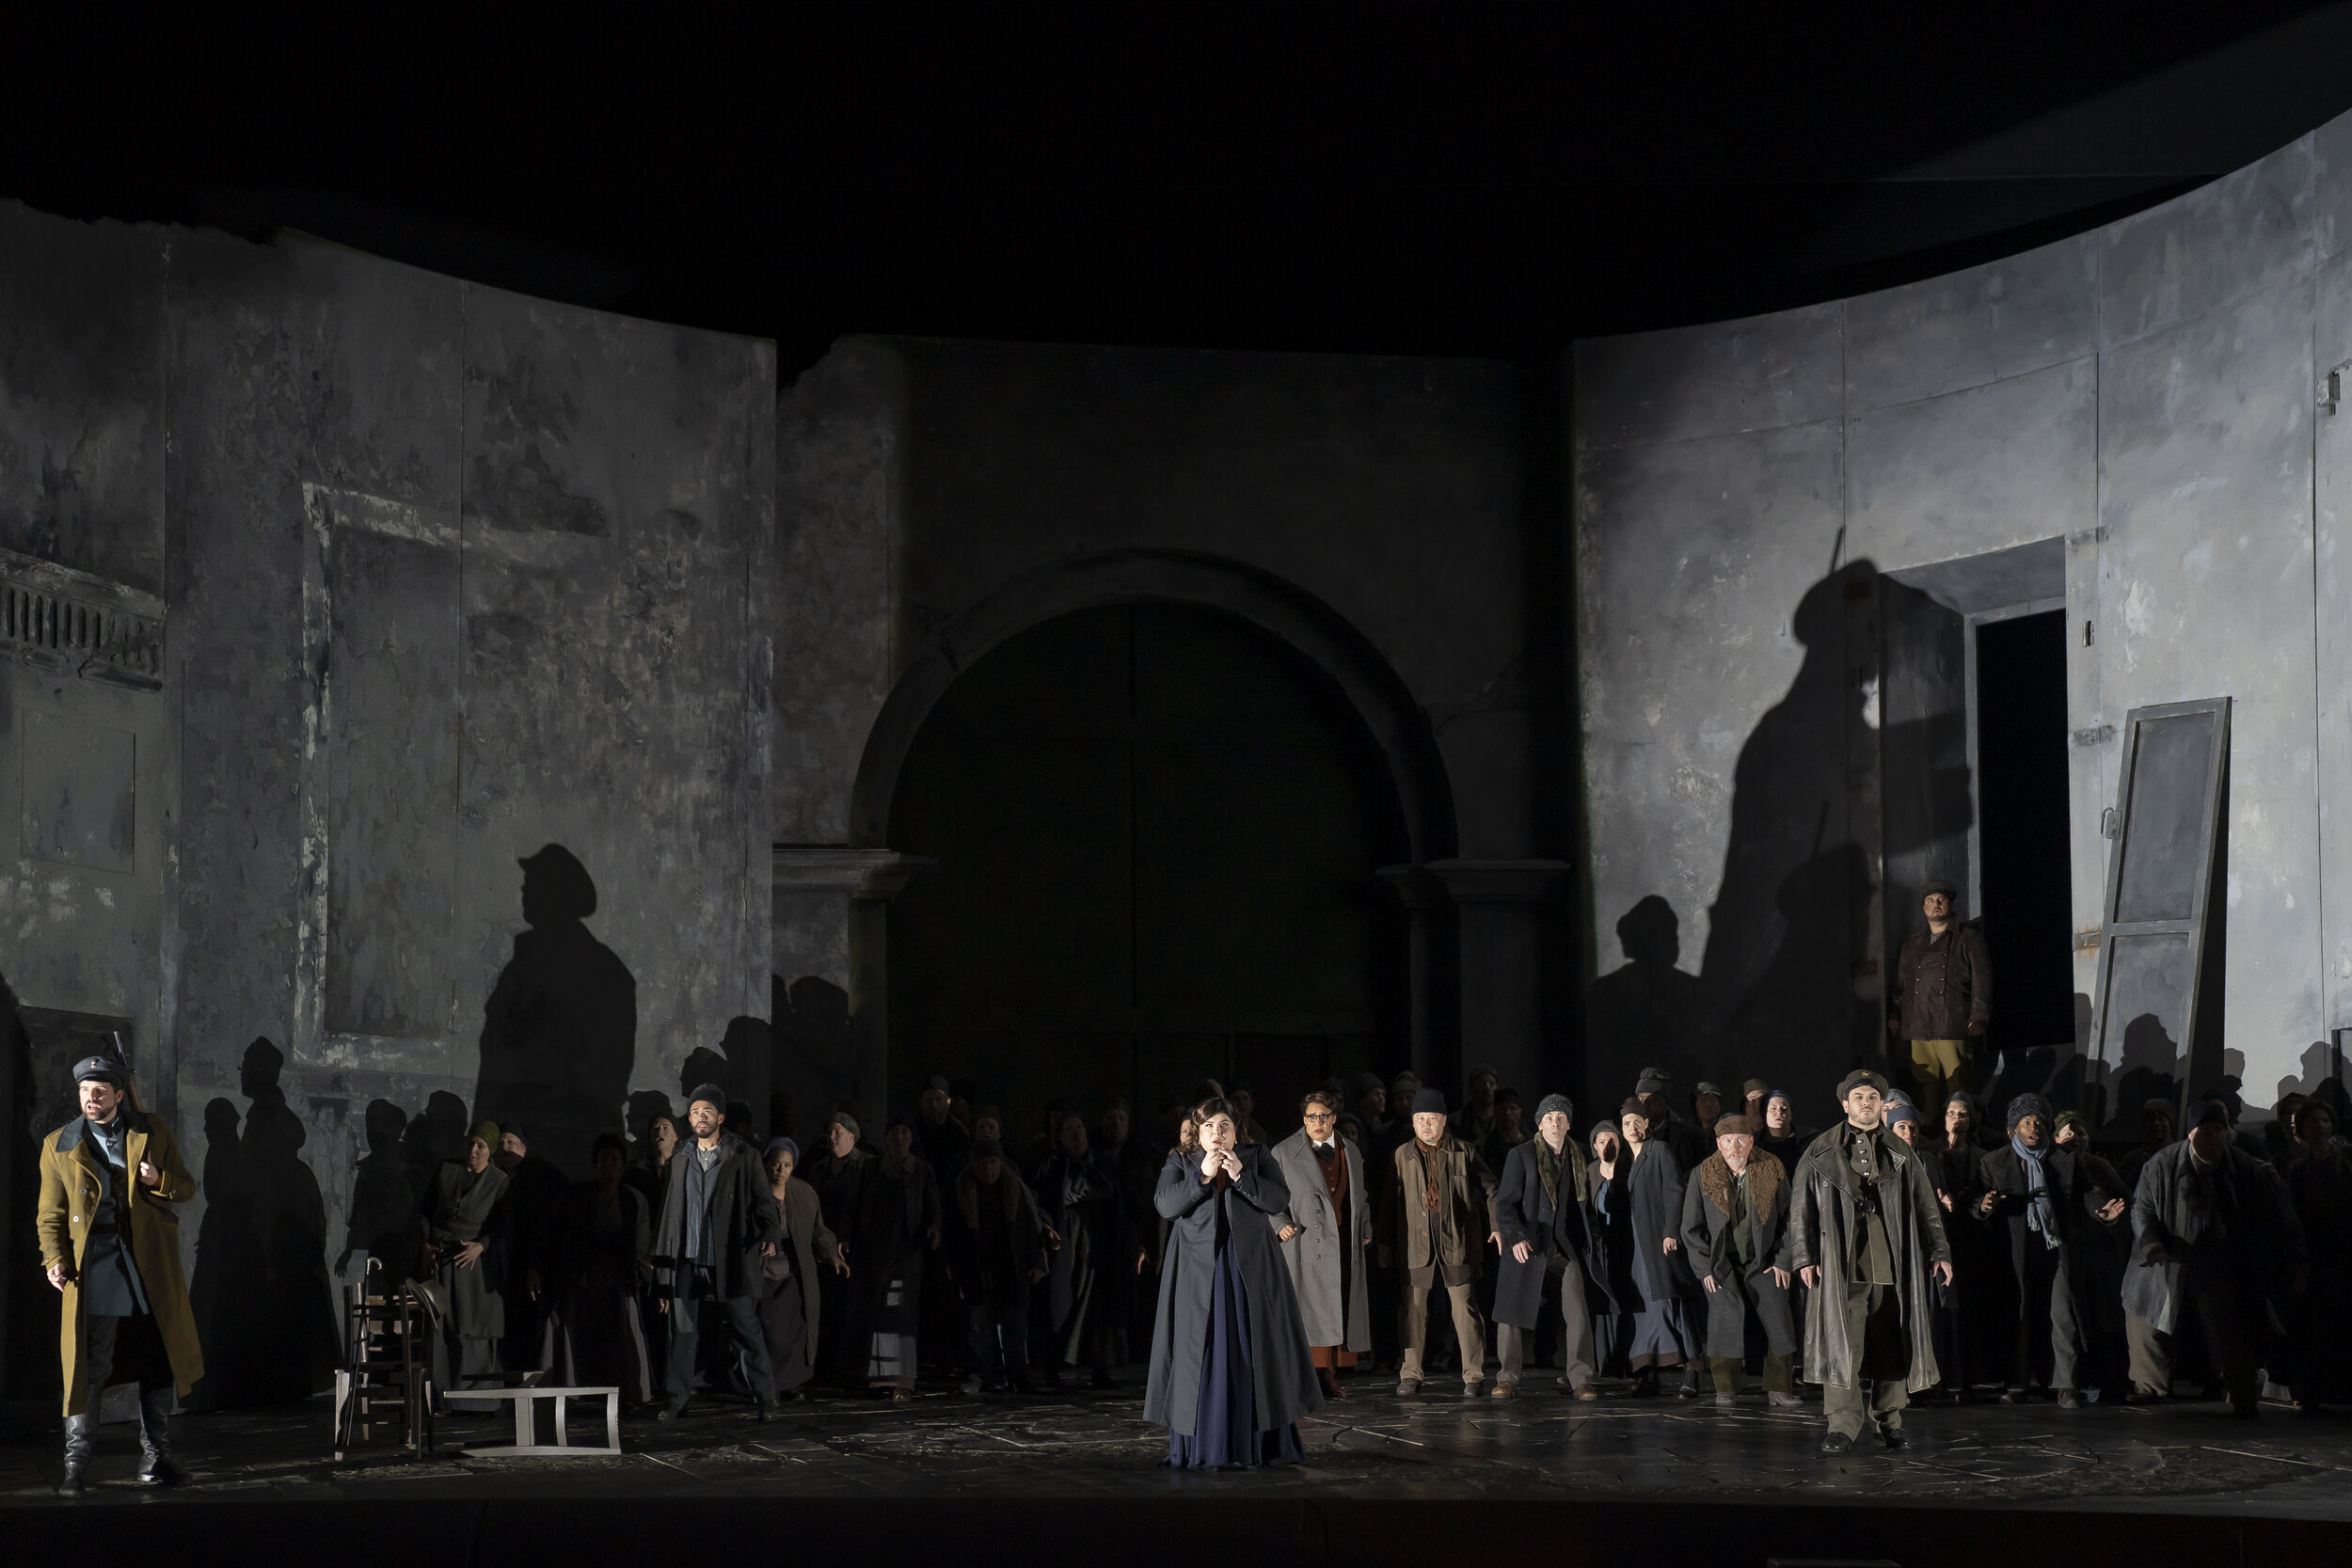 Desdemona (Leah Crocetto), center, and a fearful Cyprian crowd peer through the storm for Otello's ship. Photo by Scott Suchman; courtesy of Washington National Opera.